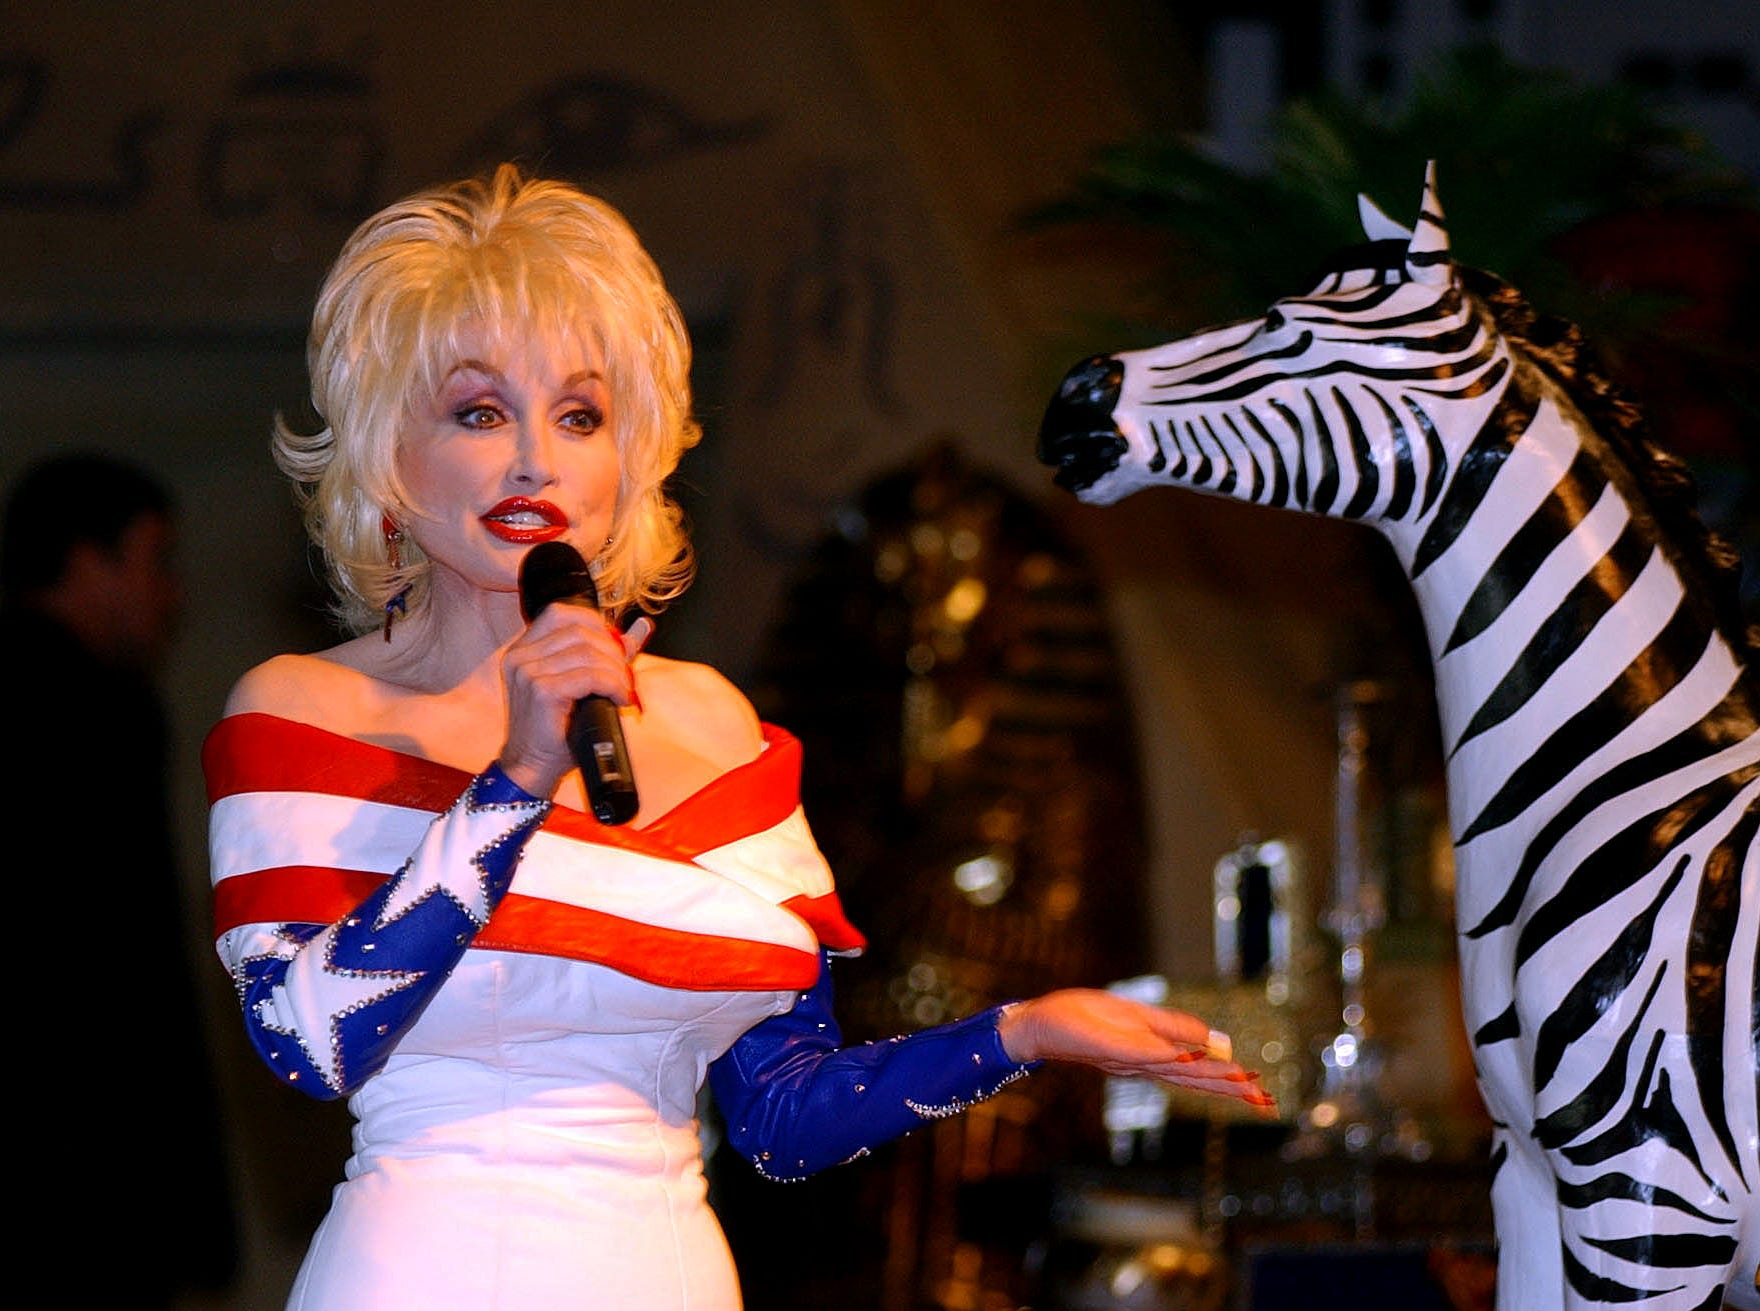 Dolly Parton talks to reporters during media day at Dollywood Friday.  Dolly was announcing the opening of her Festival of Nations which opens Saturday, April 5, 2003.